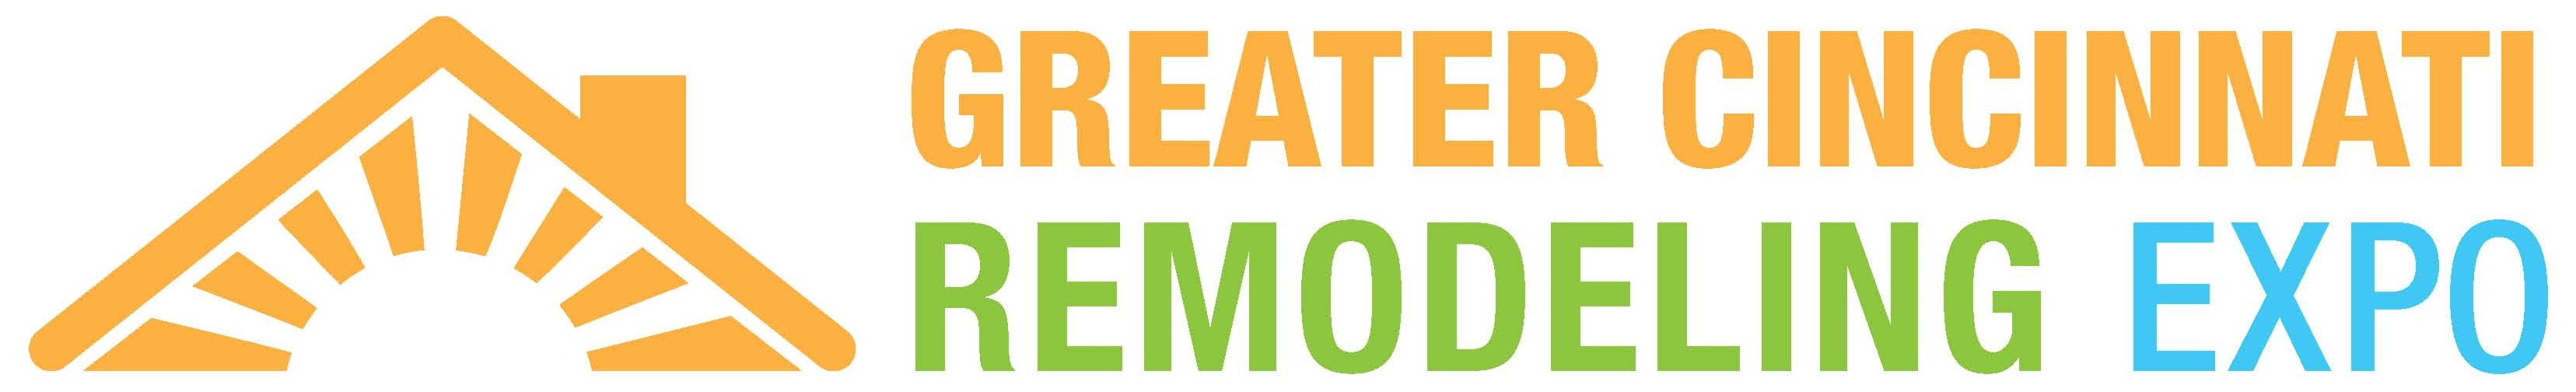 Greater-Cincinnati-Remodeling-Expo